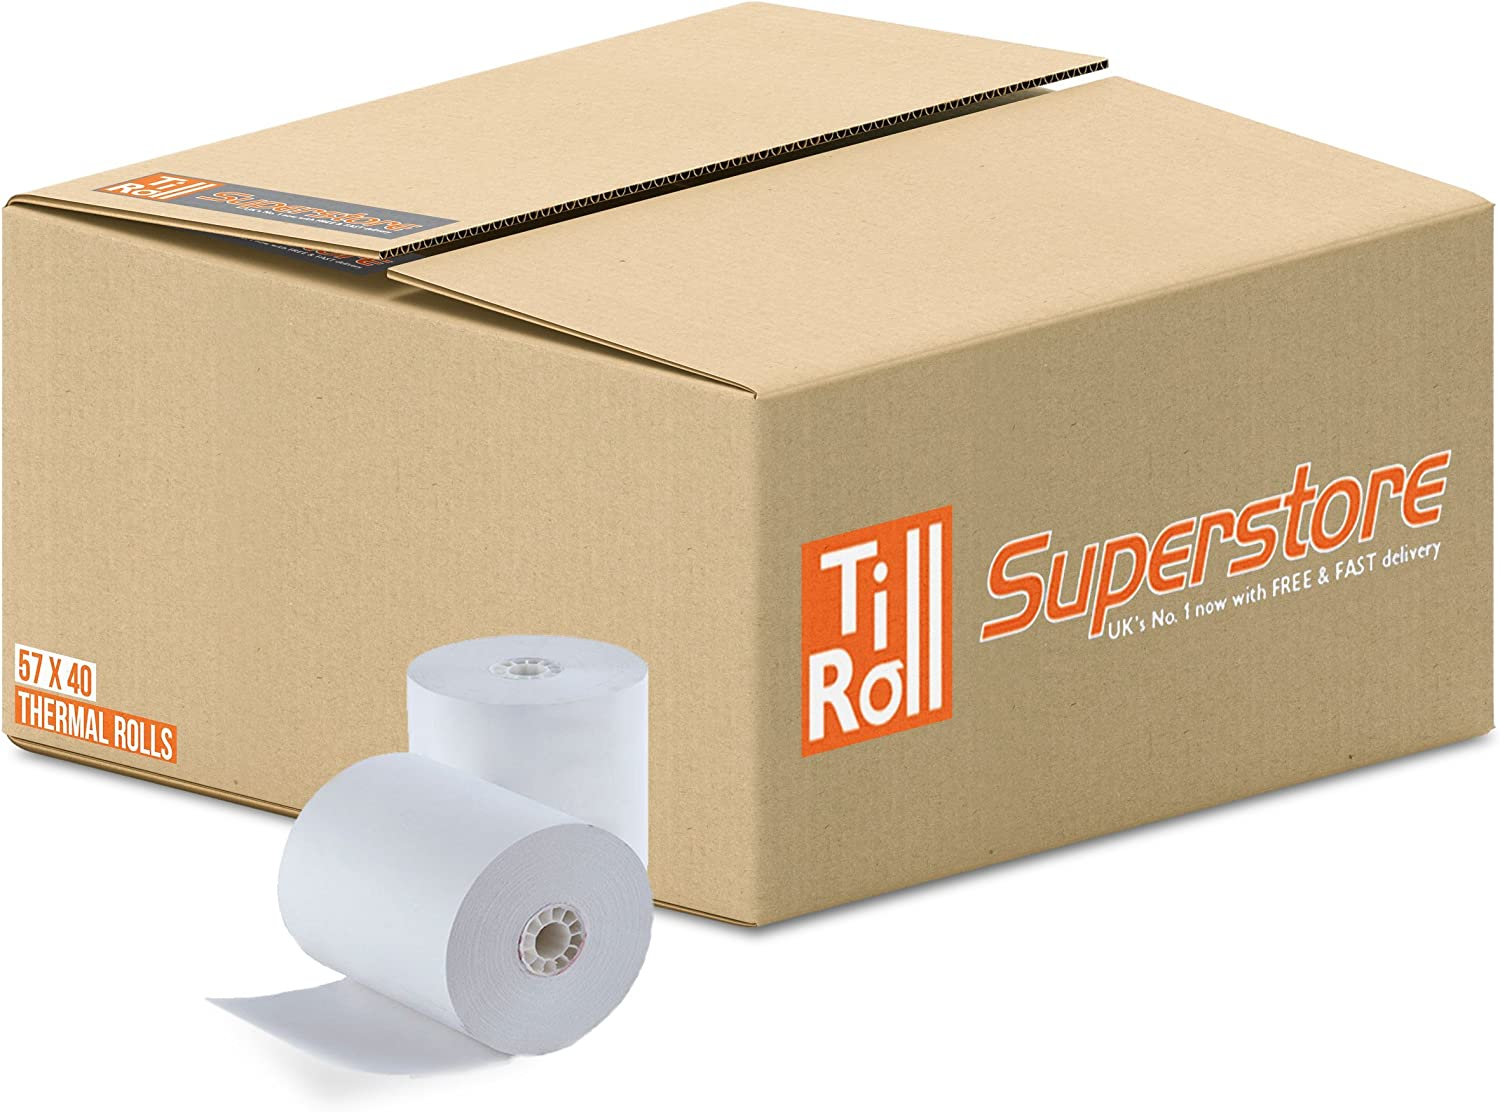 1 Box 20 Rolls of 57x40 Thermal Rolls for Credit Card Machines